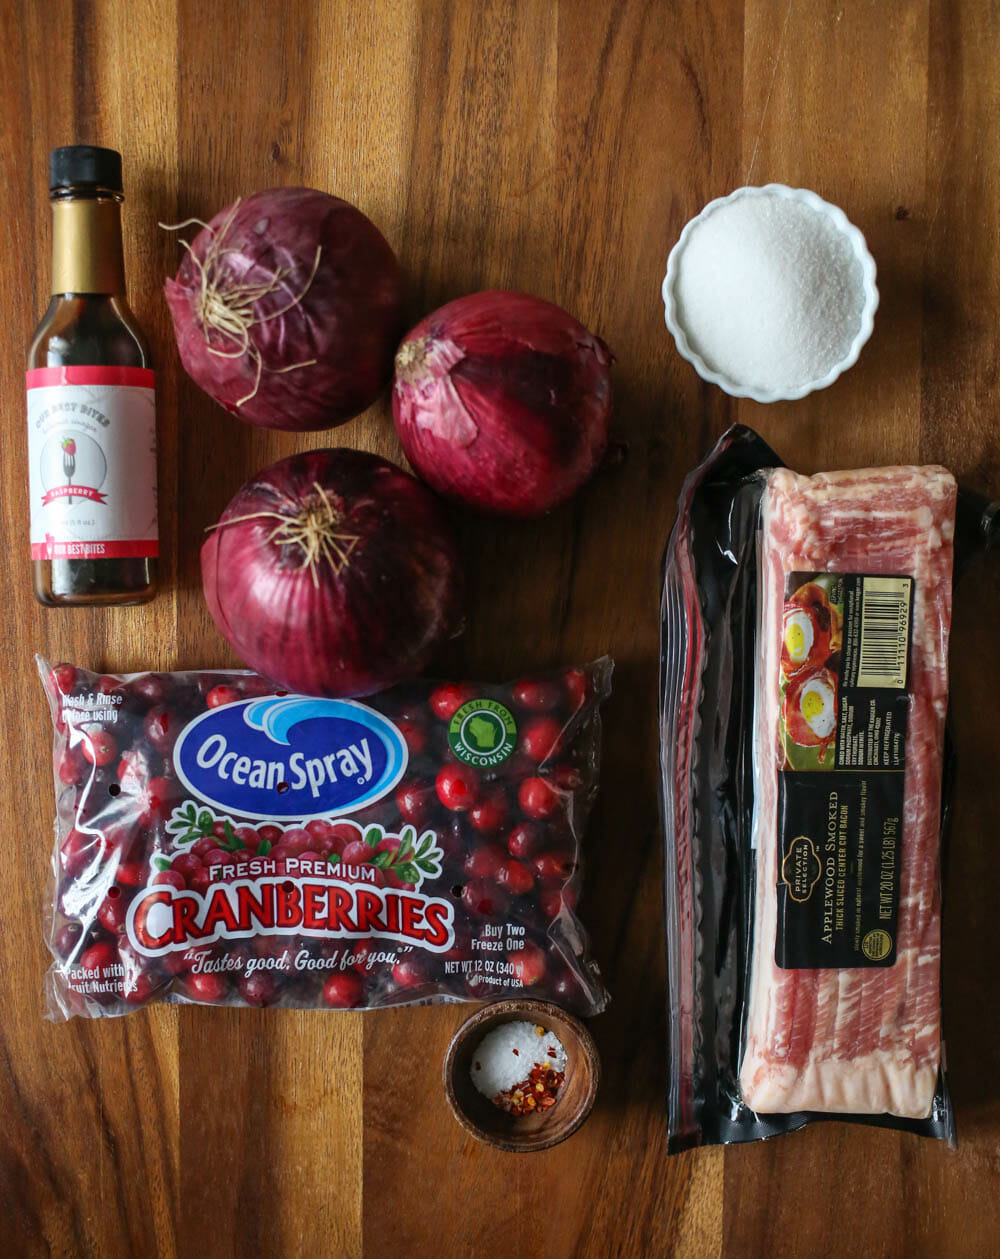 Cranberry-Bacon Onion Jam Ingredients